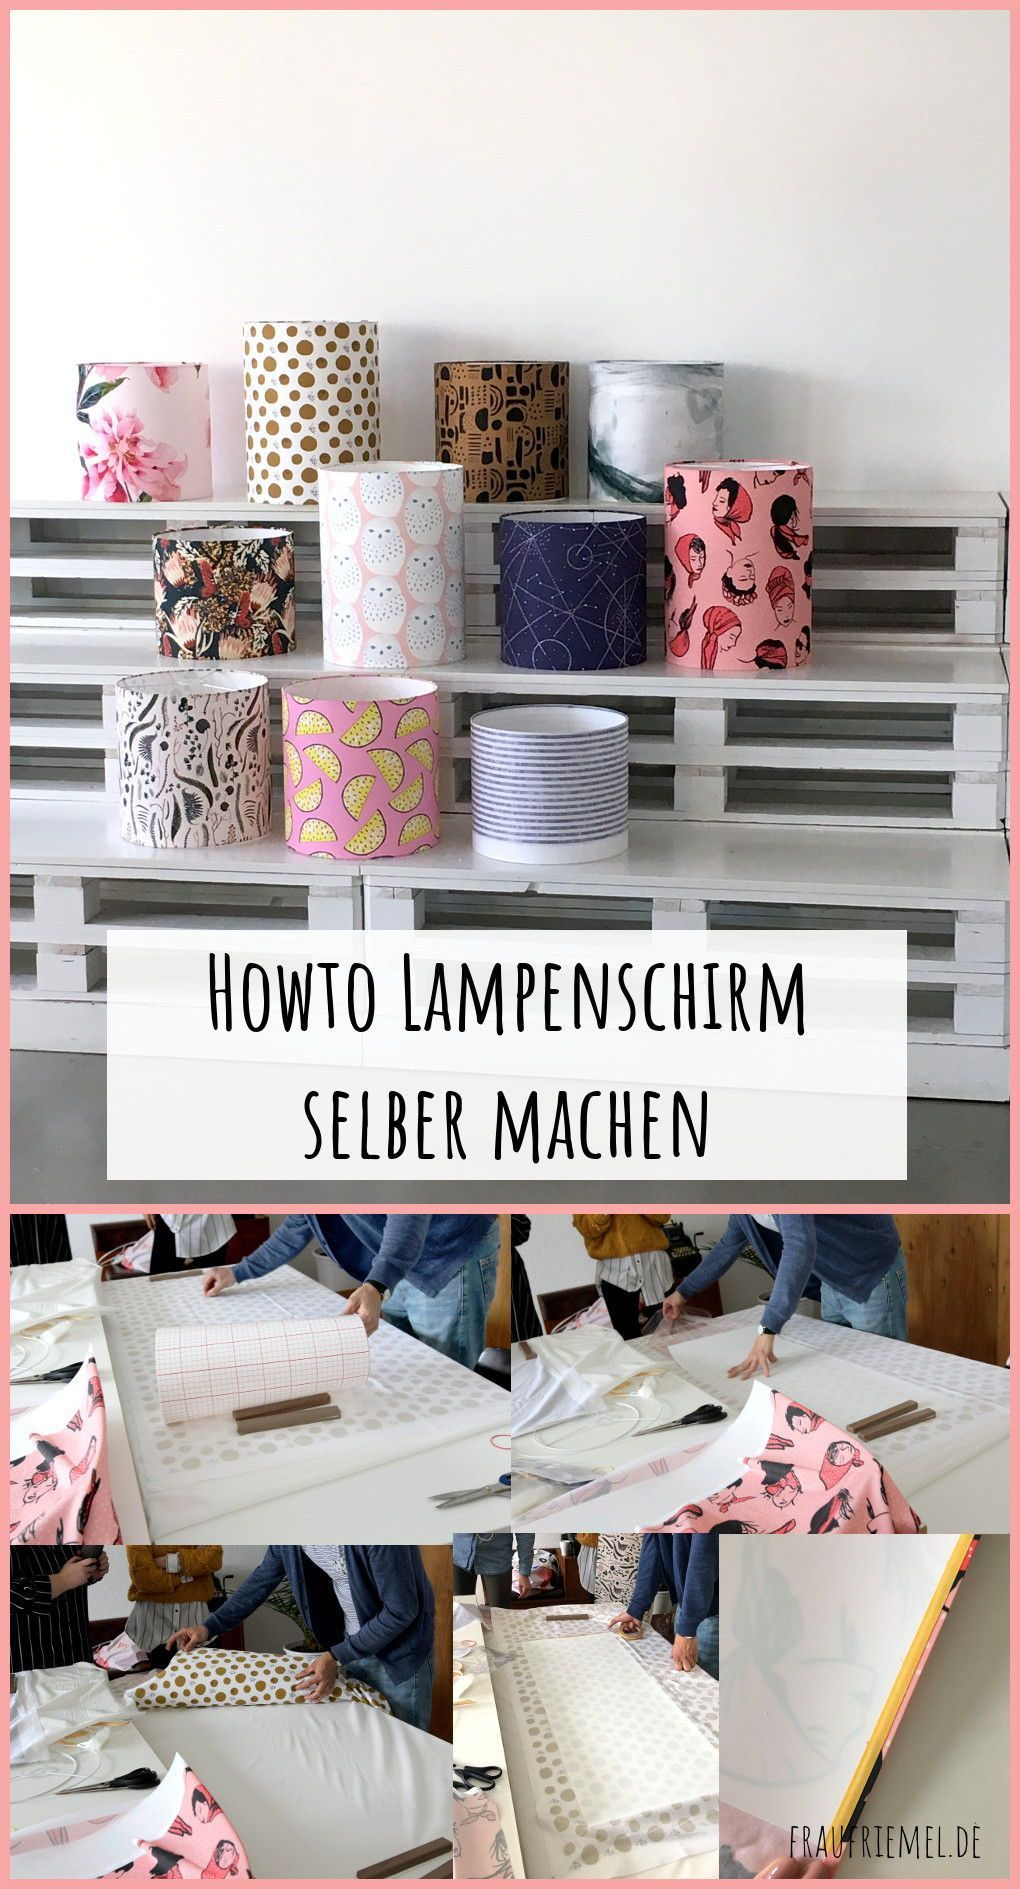 Lampenschirm Basteln Der Workshop Frau Friemel Basteln Der Frau Friemel Lampenschirm Workshop In 2020 Diy Lamp Shade Baby Closet Organization Unique Storage